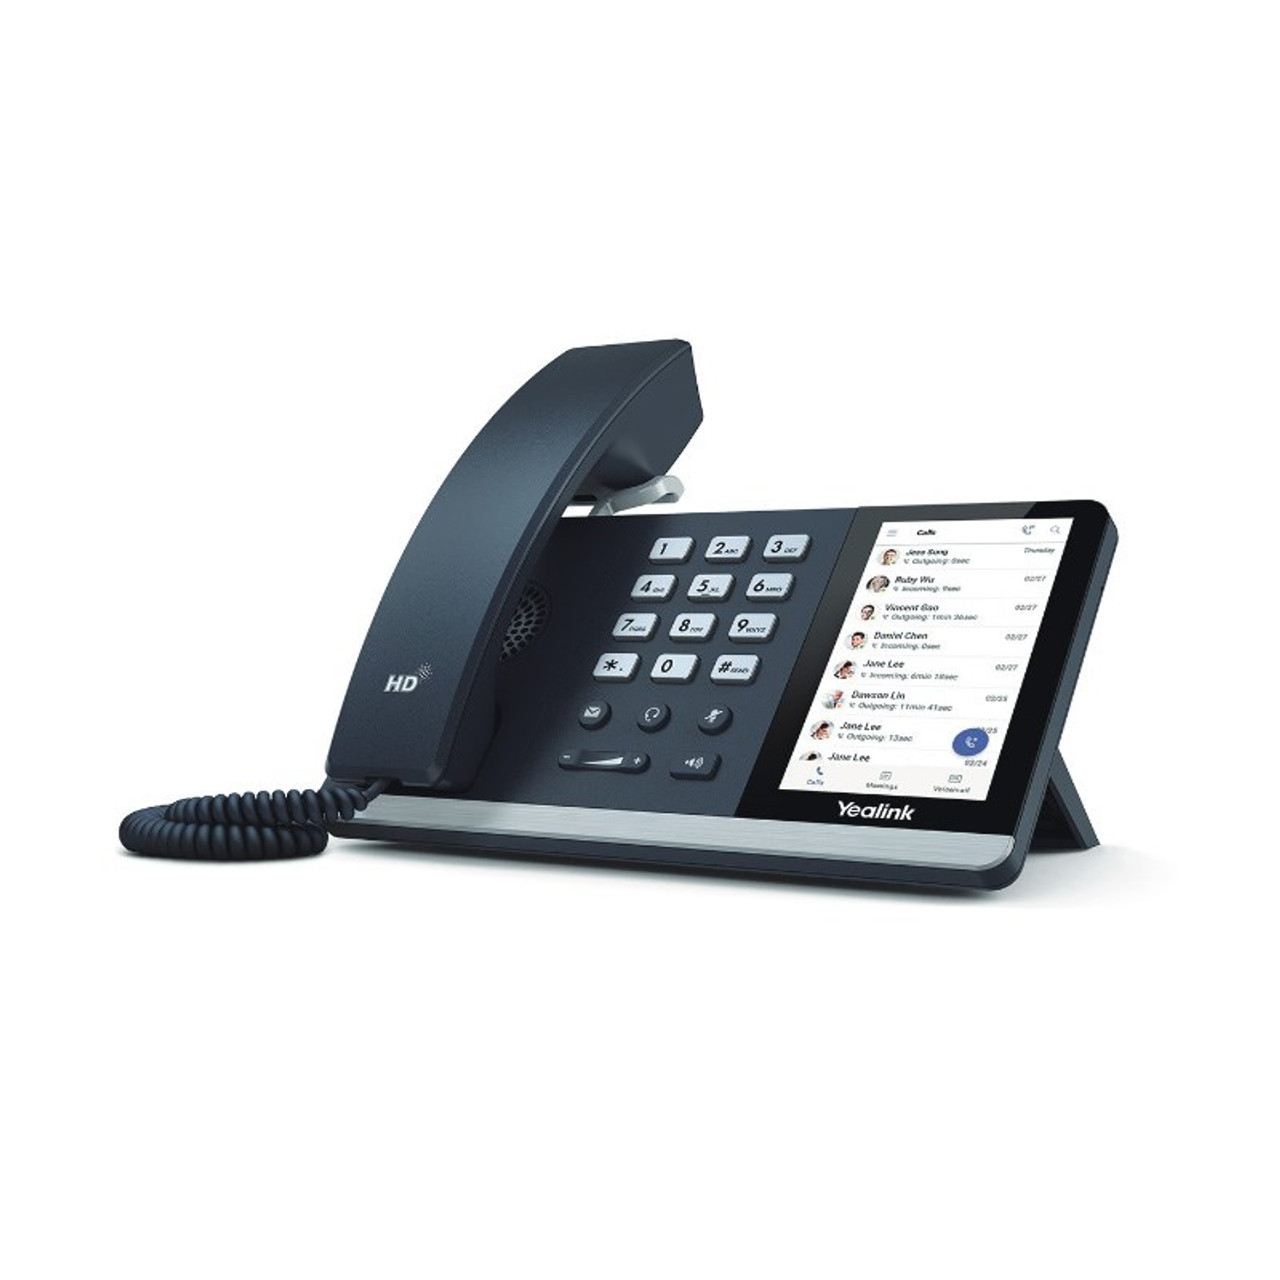 Image for Yealink T55A-TEAMS HD Android IP Phone - Microsoft Teams Edition CX Computer Superstore